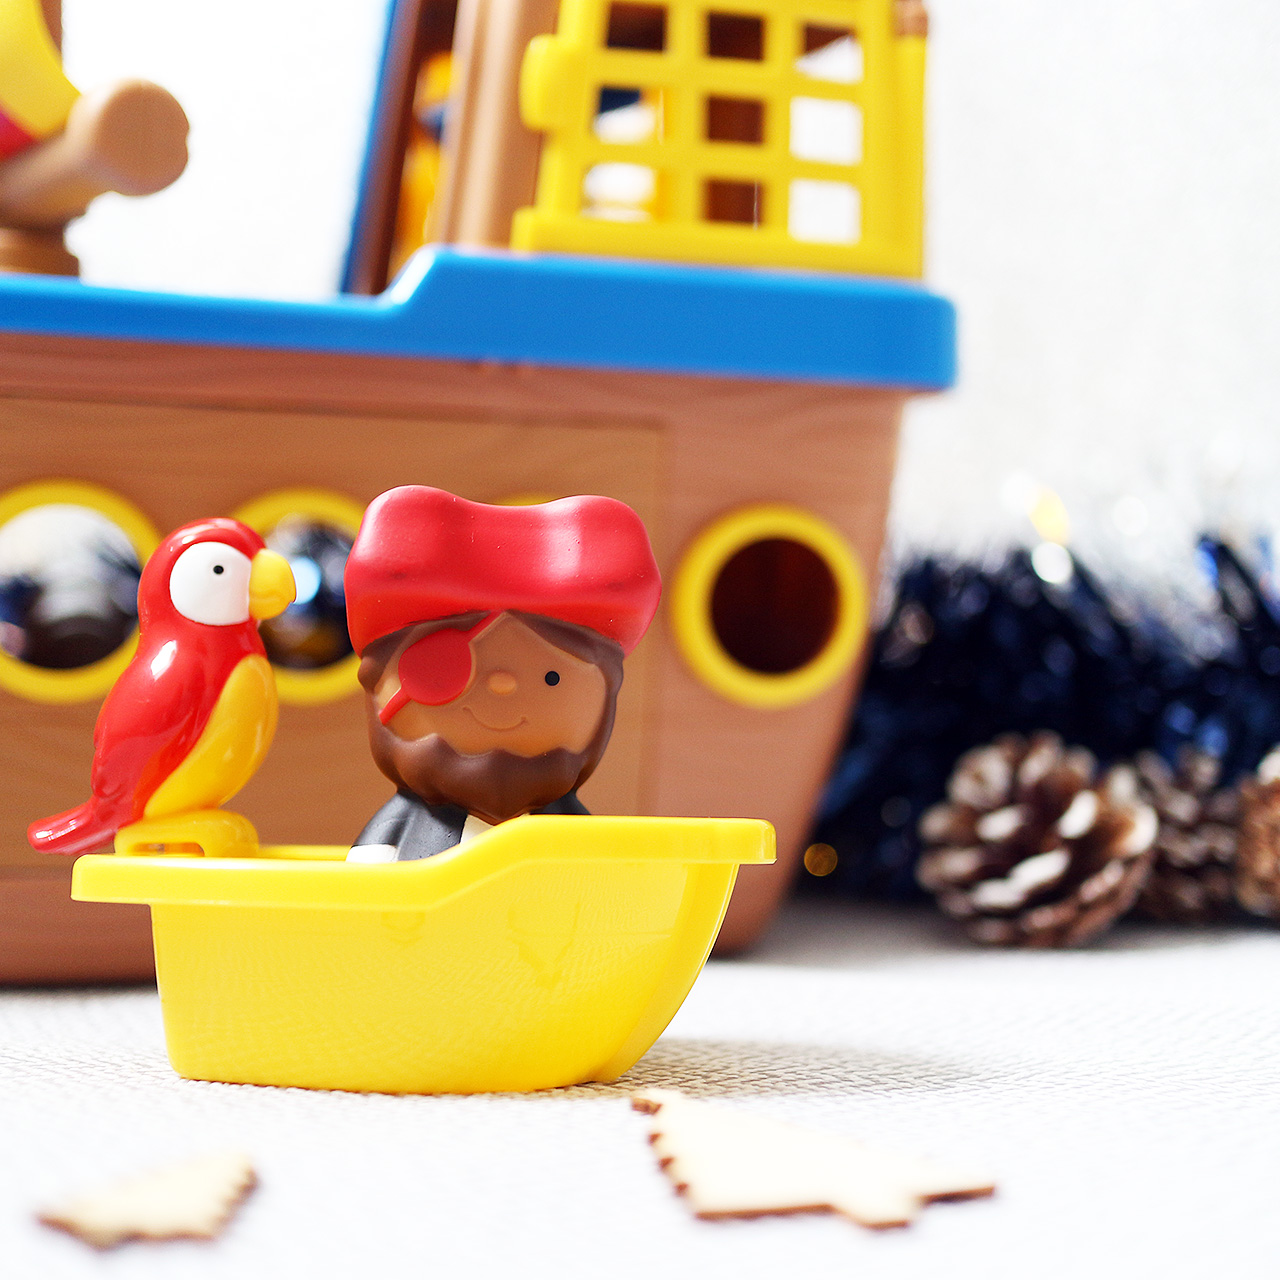 Tots Town pirate playset - gift ideas for babies and toddlers this Christmas